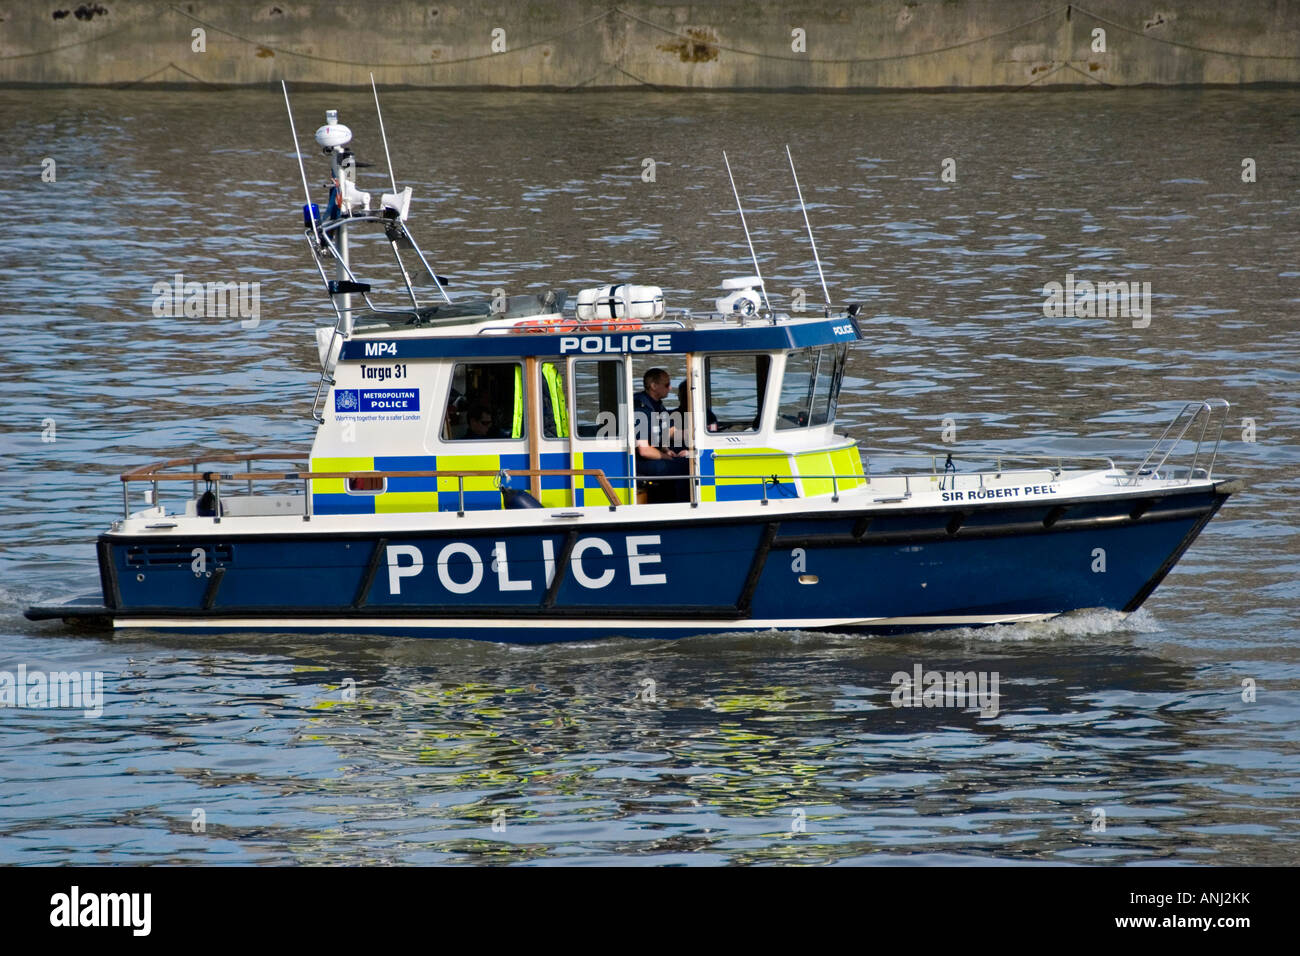 1ecc48b4 A police launch belonging to the Marine Support Unit of the Metropolitan  Police on the River